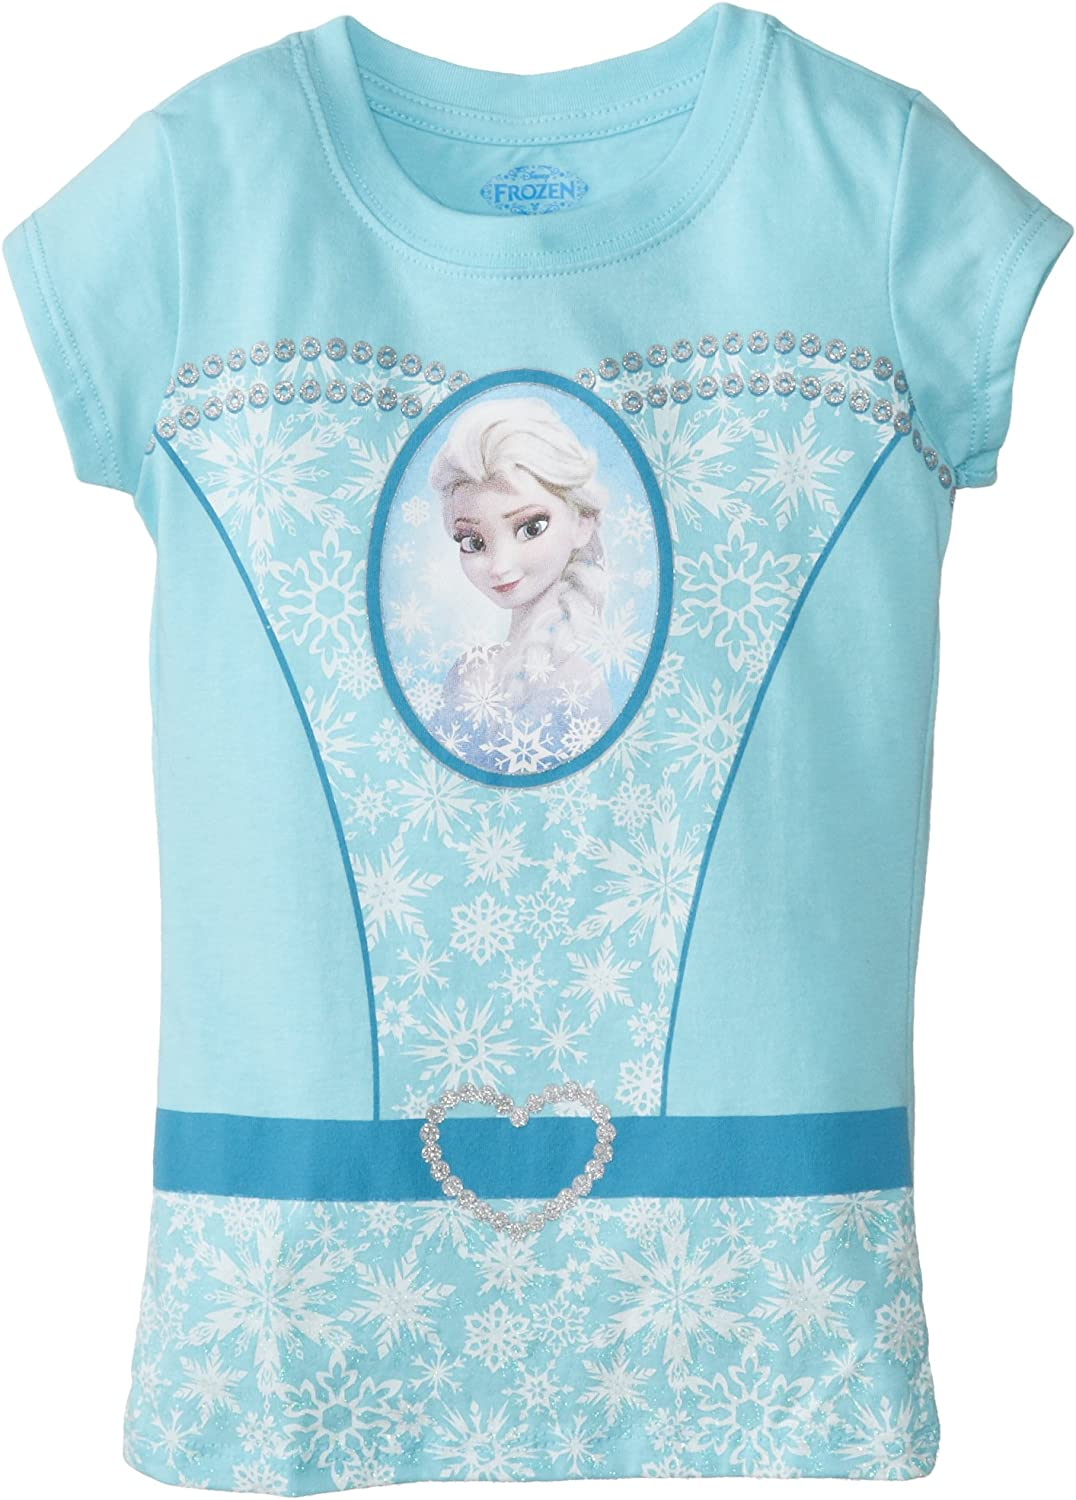 Ladies fitted and kids FROZEN 2 inspired SNOWFLAKE T-shirt